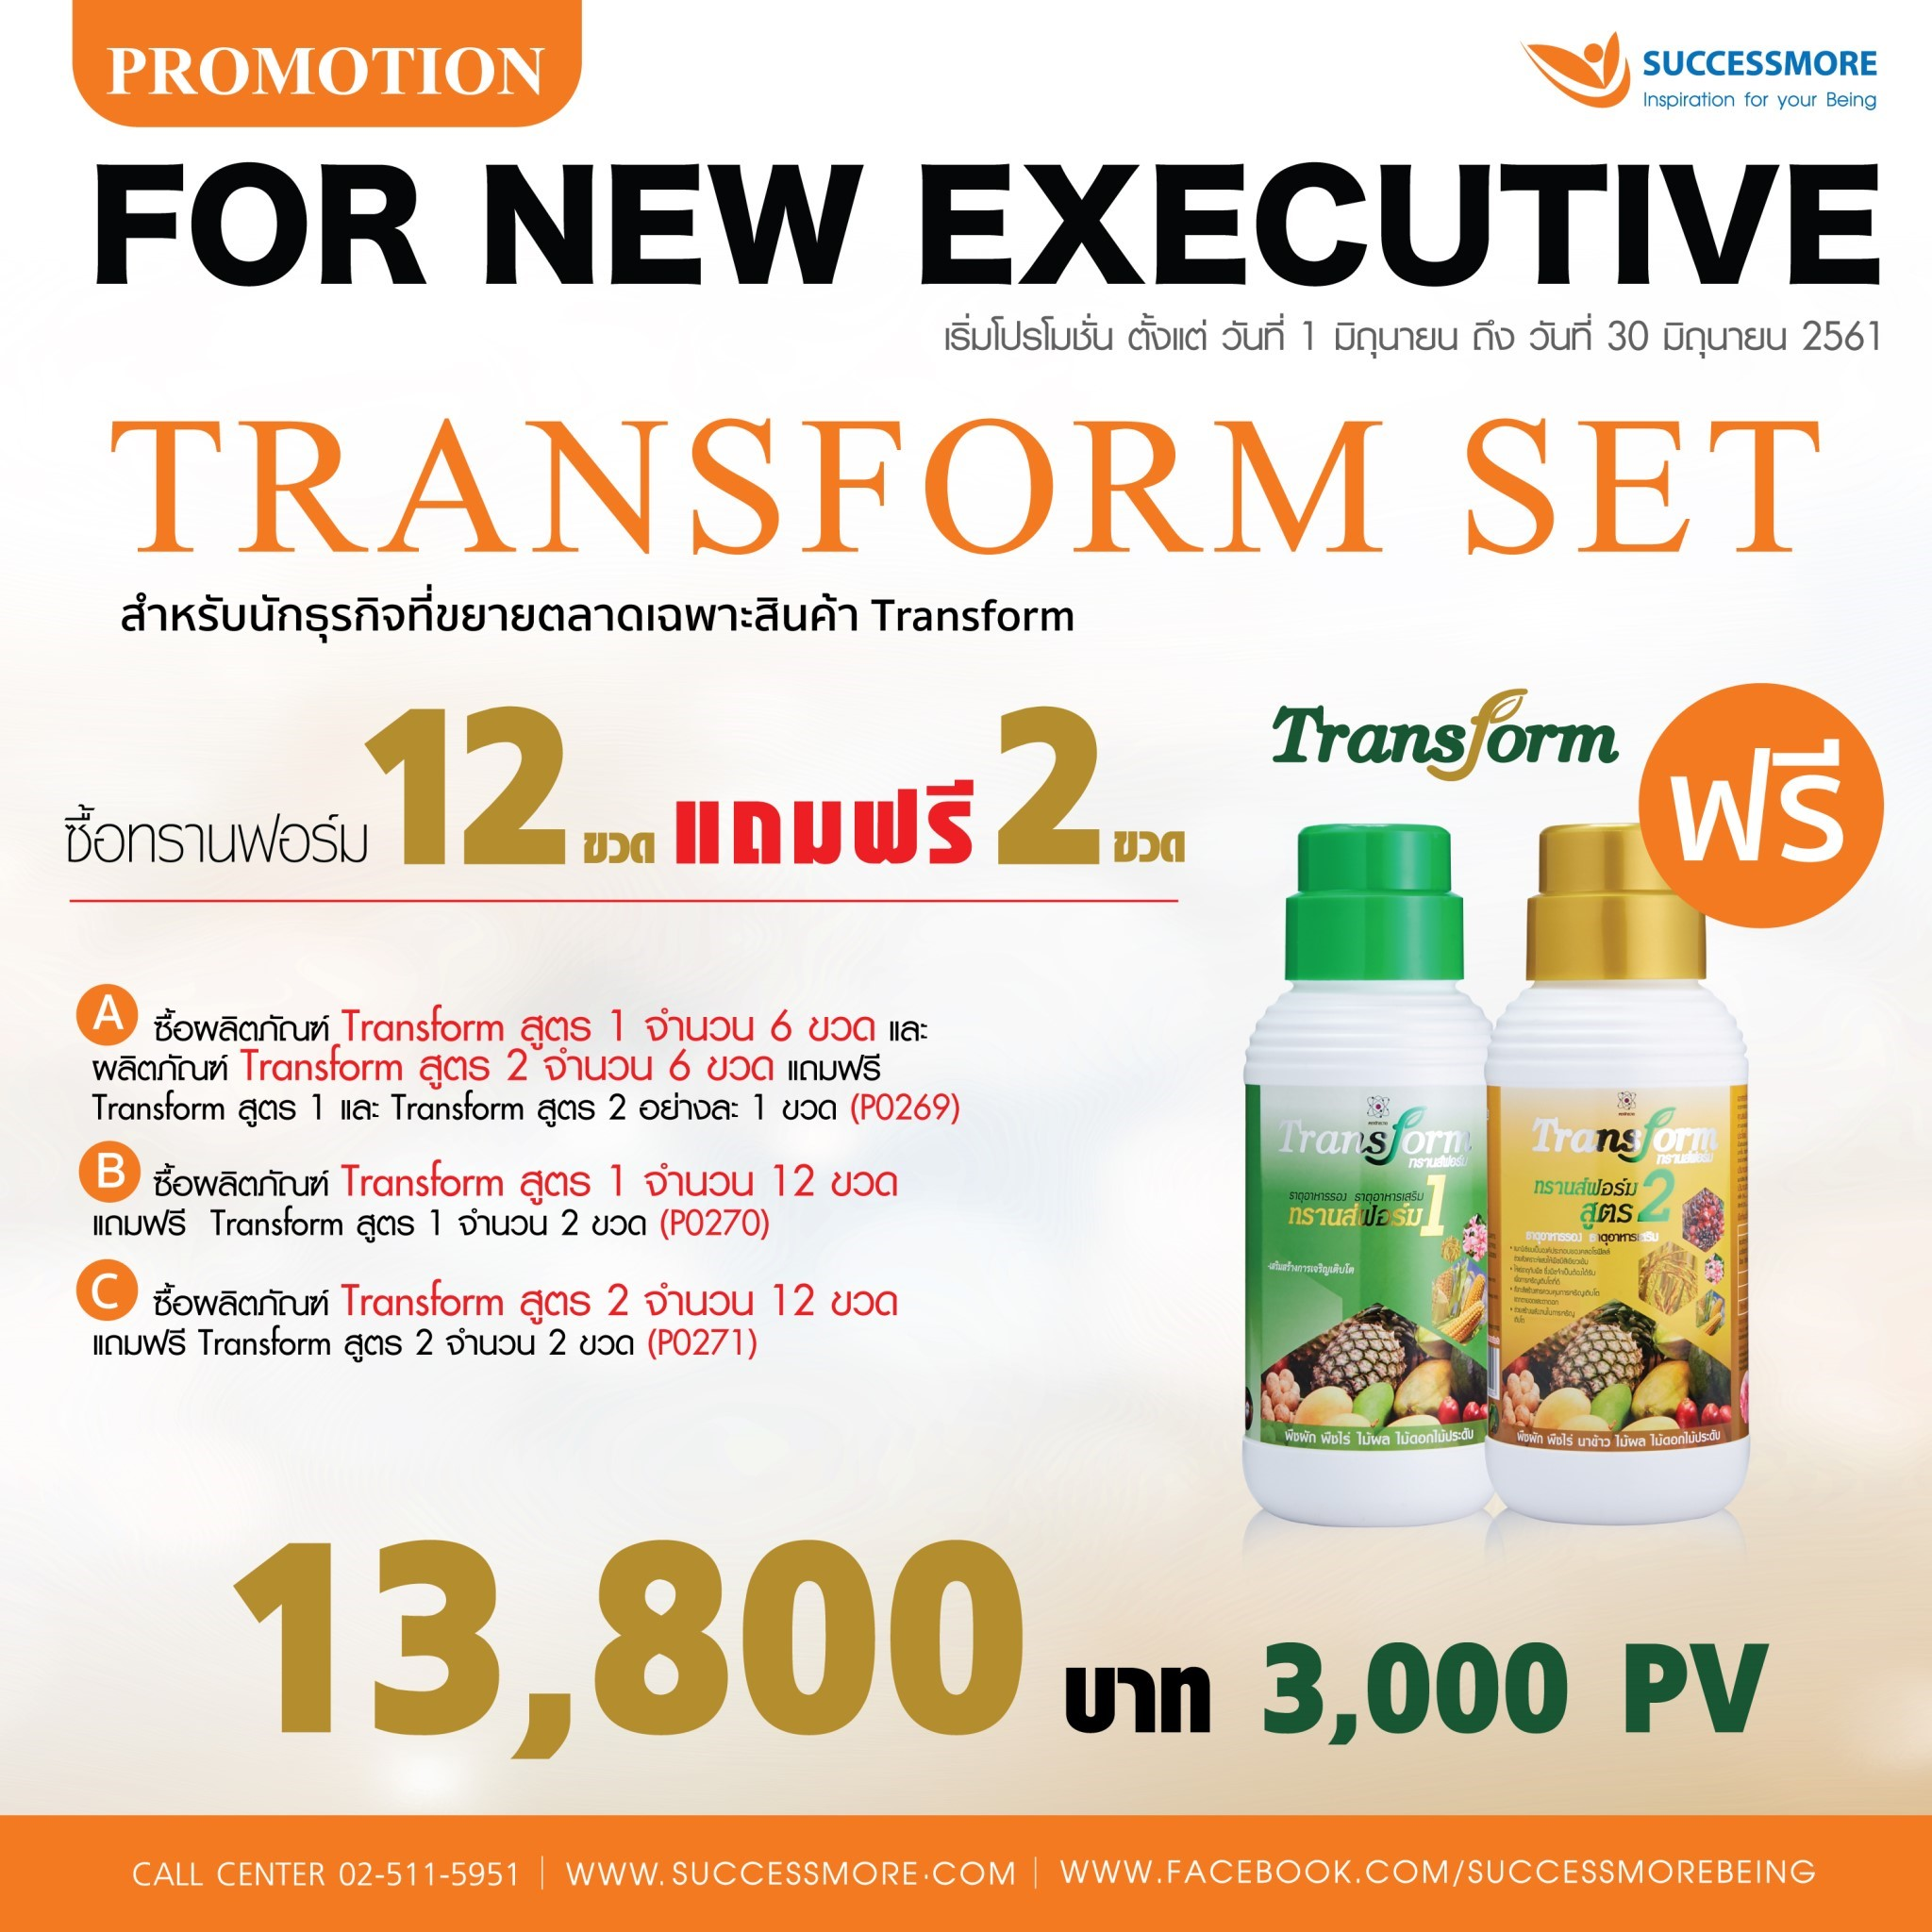 SUCCESSMORE PROMOTION FOR NEW EXECUTIVE (3)